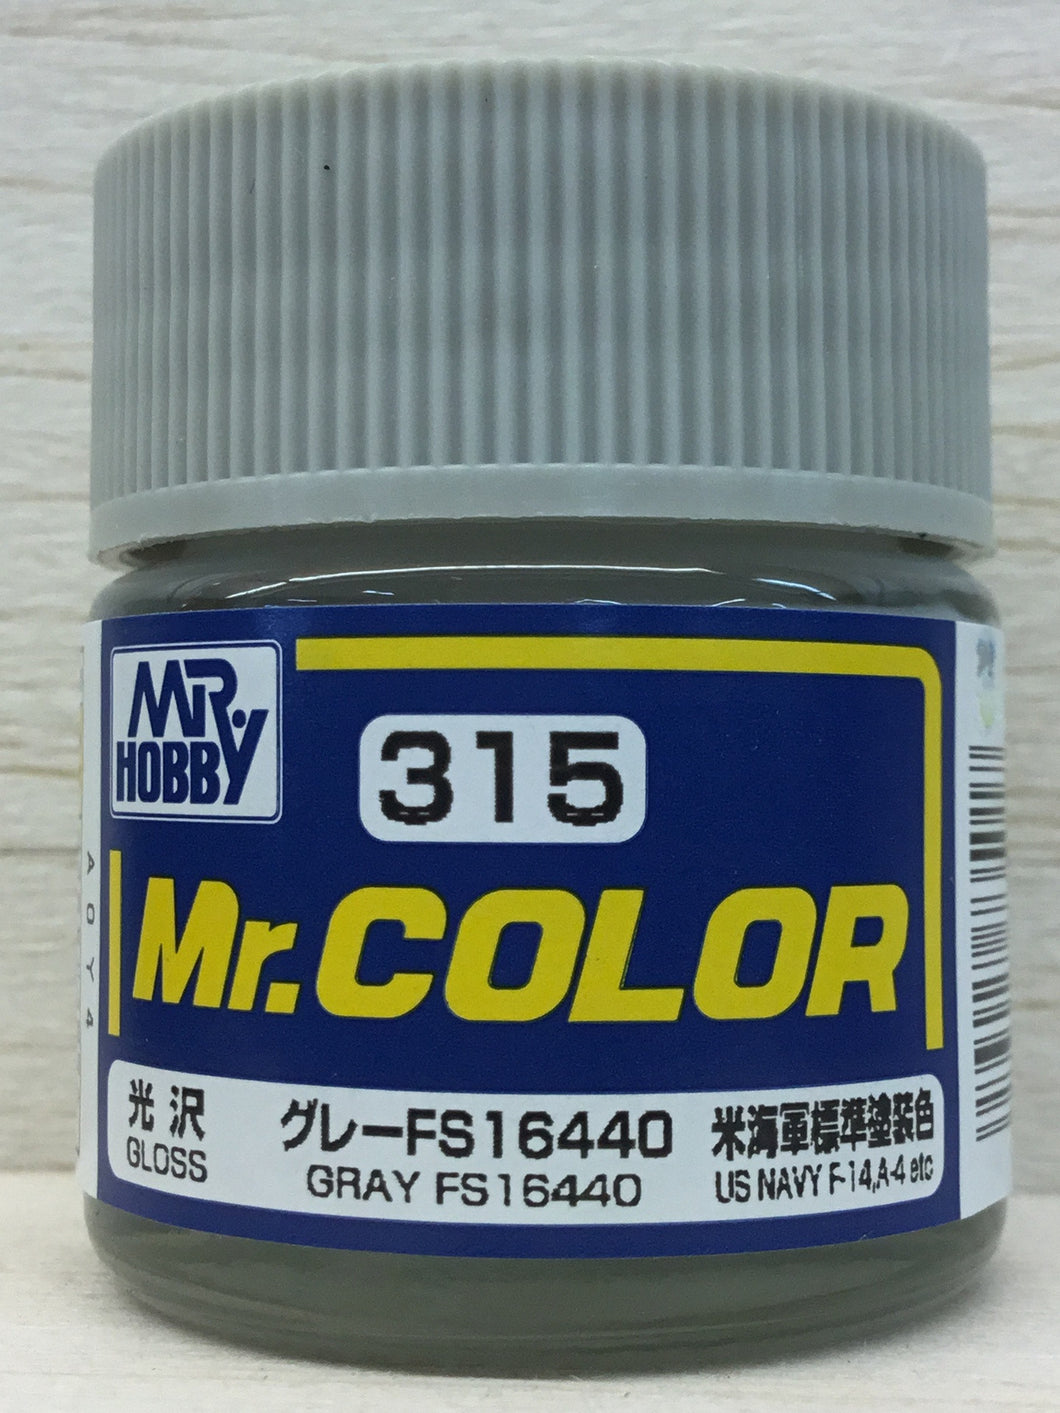 GUNZE MR COLOR C315 GLOSS GRAY FS16440